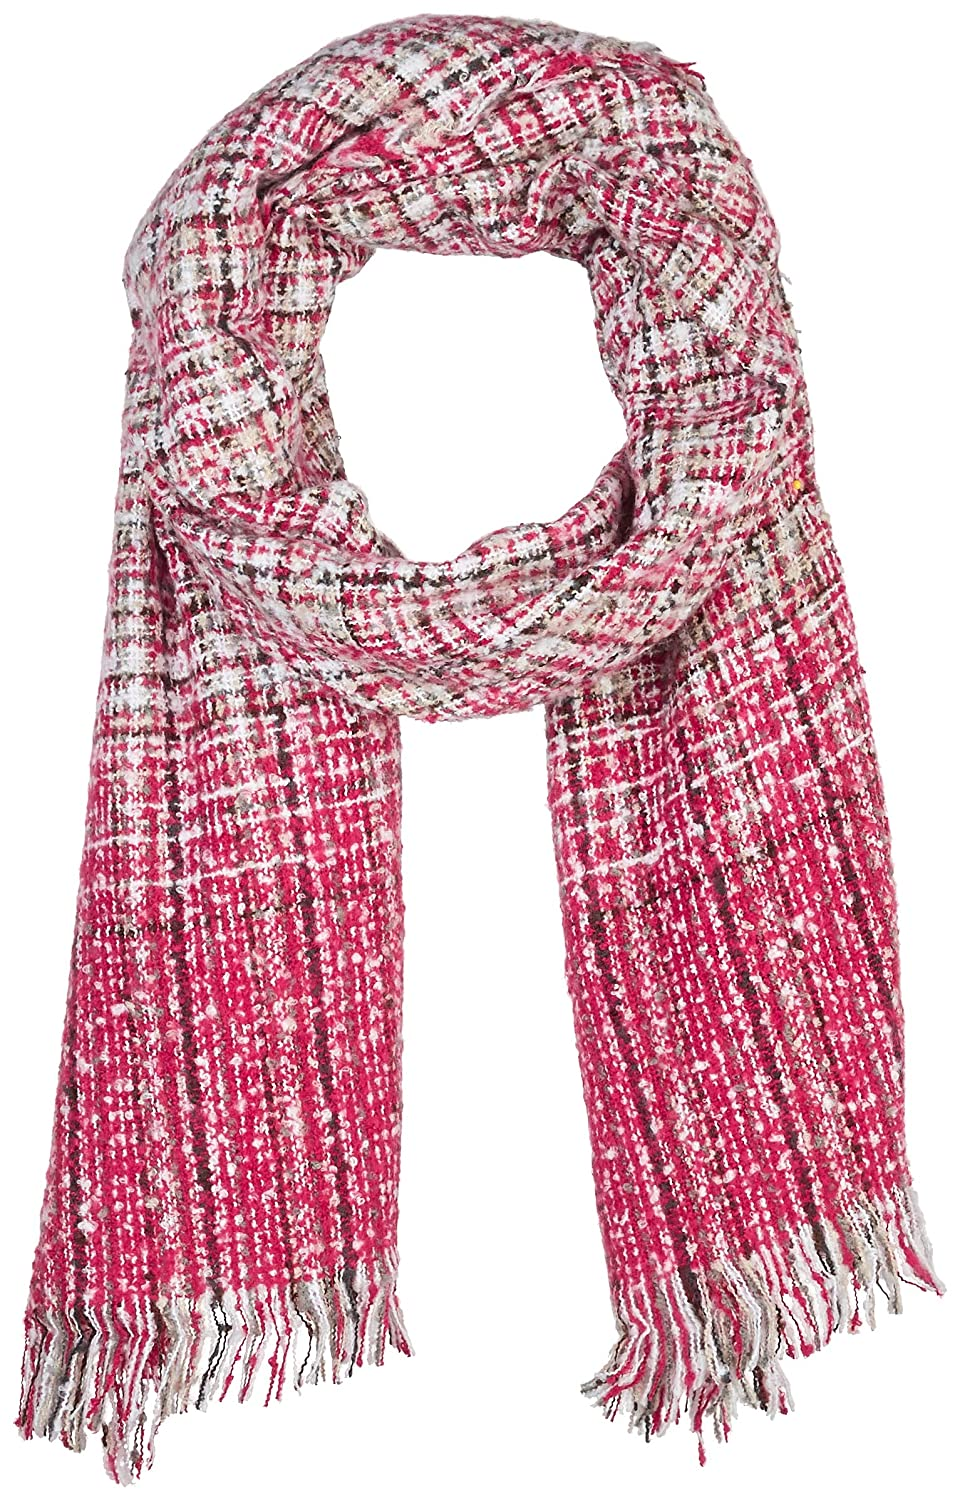 color8 Beautiful Nomad Pashmina Shawl Wrap Scarf in Solid and Plaid Pattern